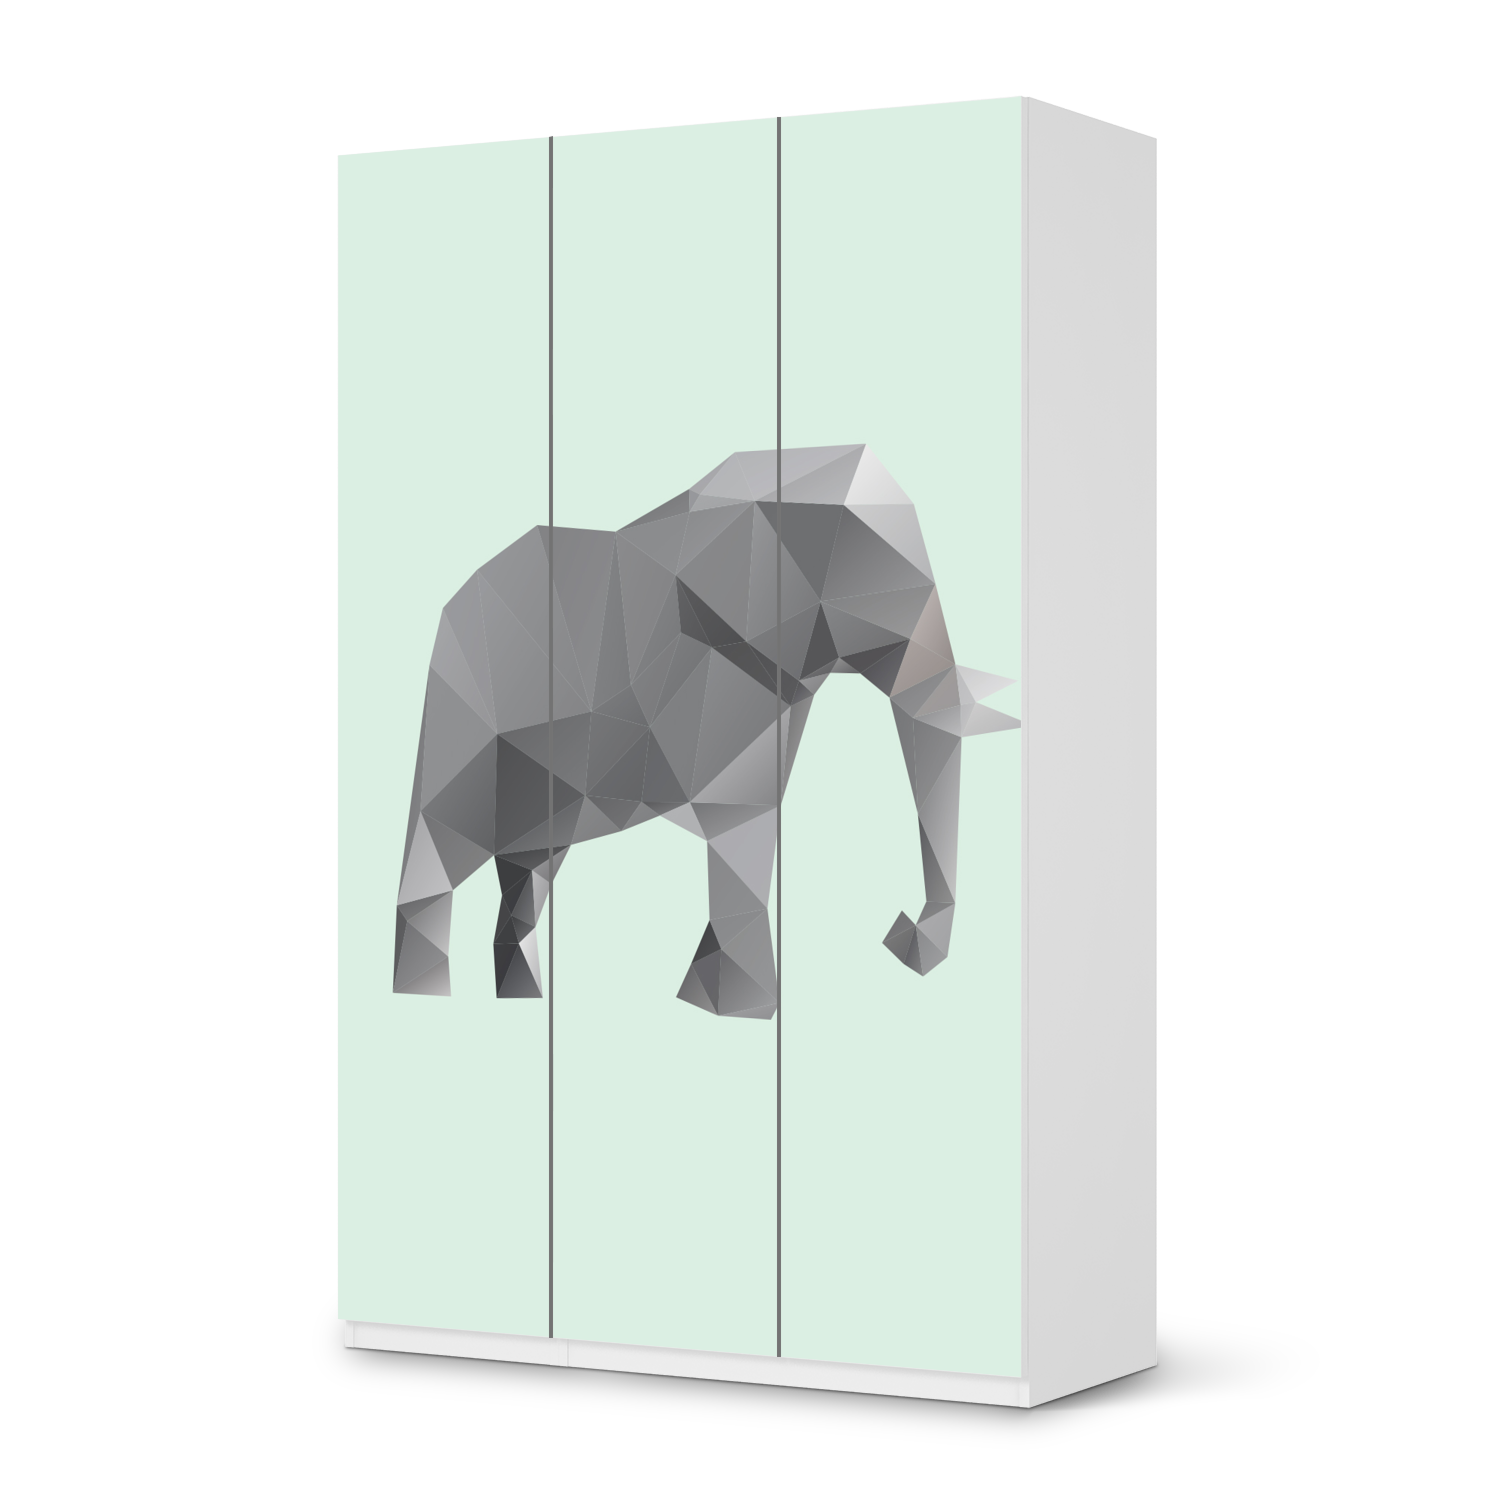 m belfolie origami elephant pax schrank 236 cm h he 3 t ren t14 bubele. Black Bedroom Furniture Sets. Home Design Ideas